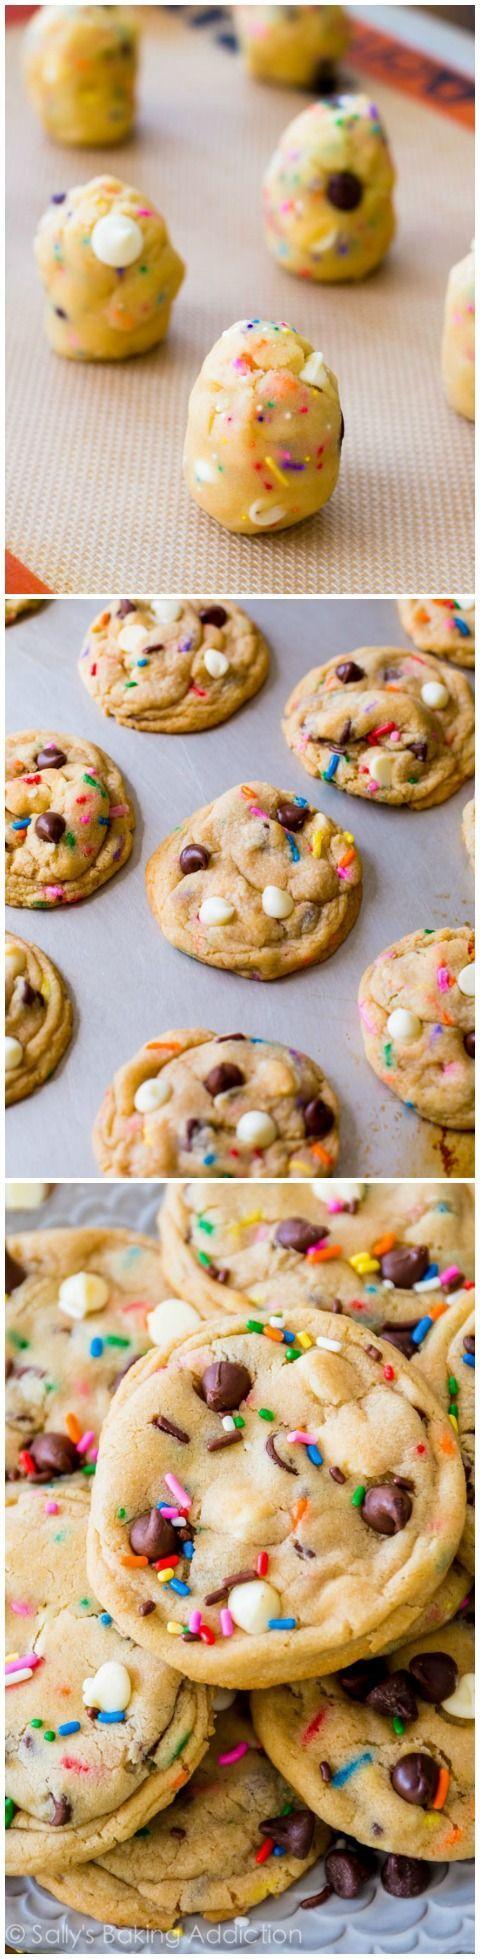 THE Cake Batter Chocolate Chip Cookie recipe on sallysbakingaddic... One of the most popular recipes!